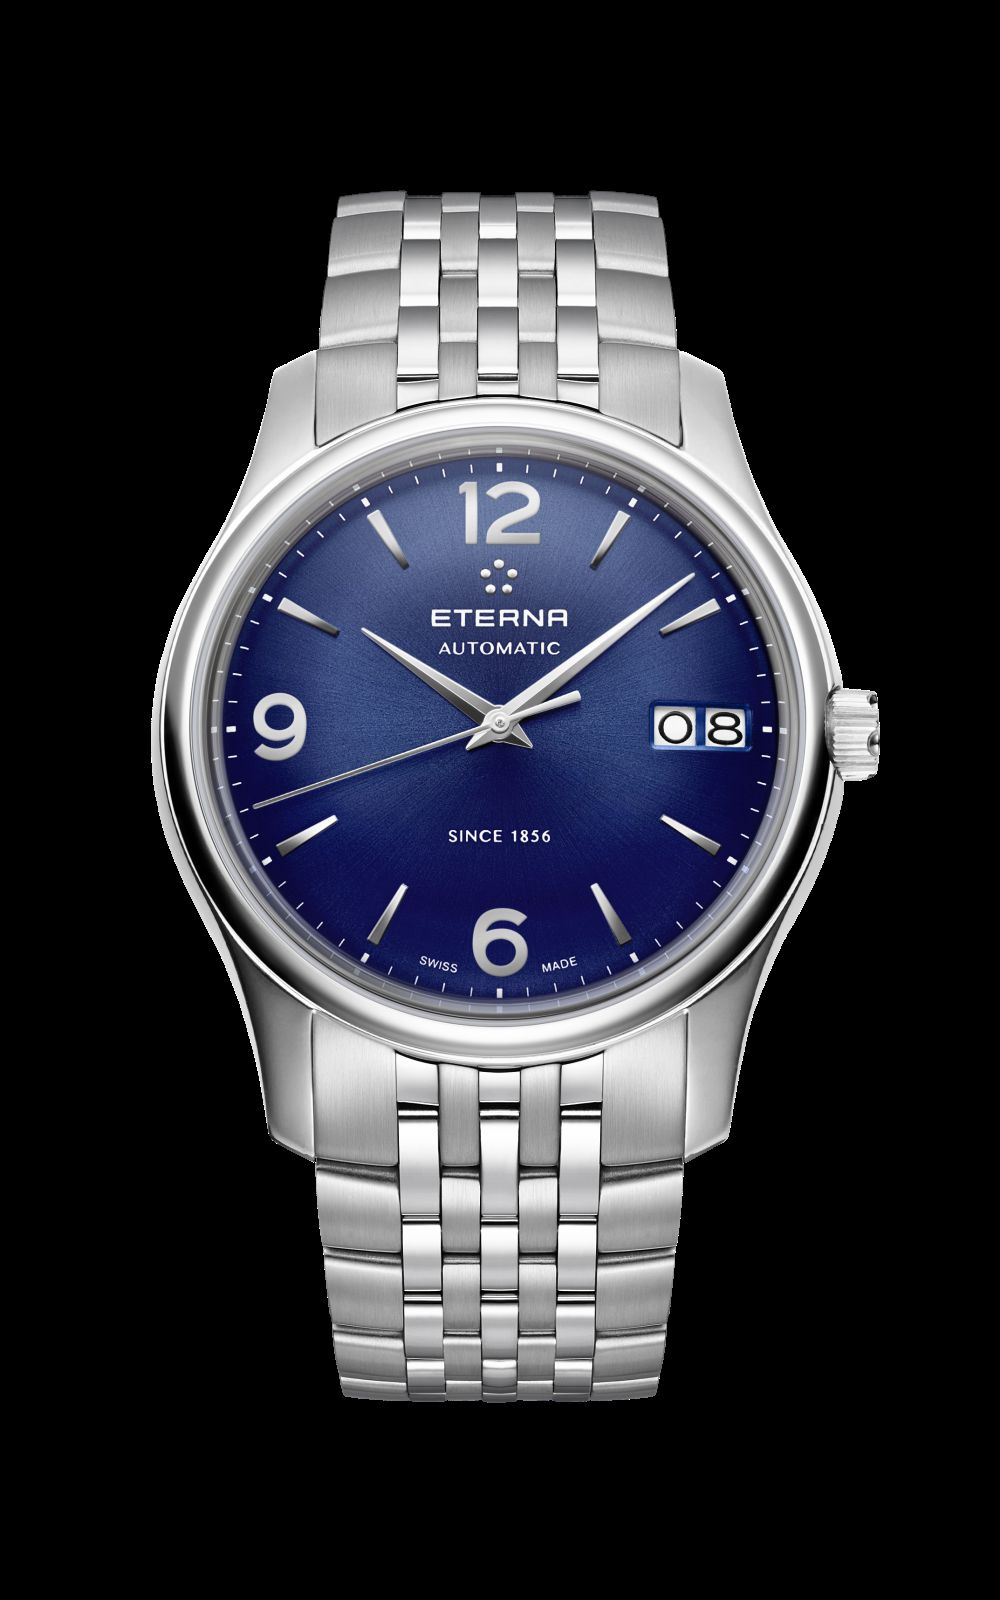 Eterna-Granges-1856-Watch-6.jpg